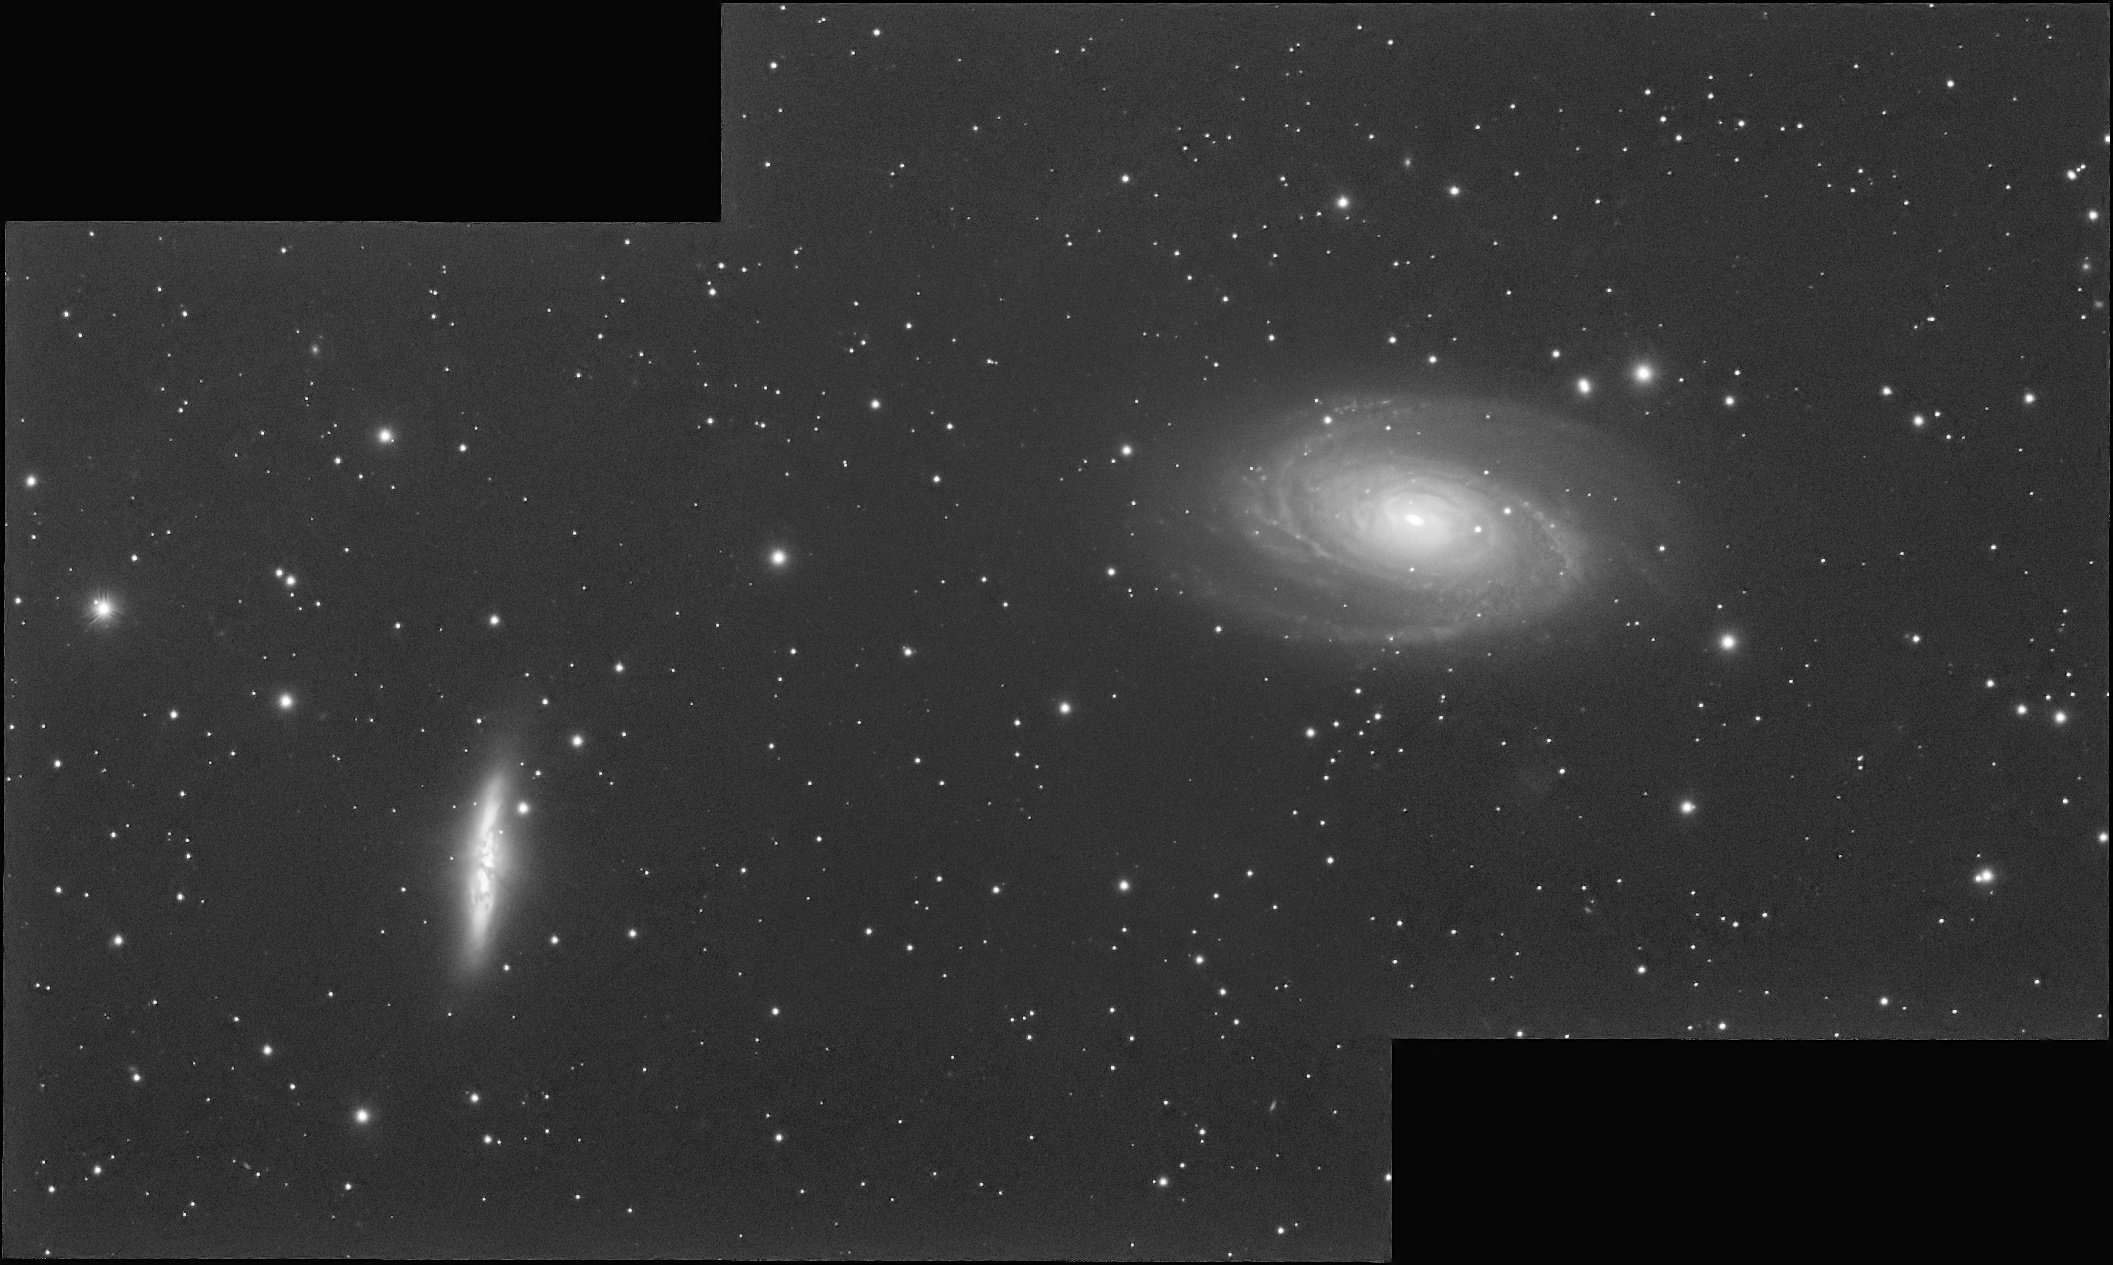 M81_M82-Luminance-St_filtered.jpg